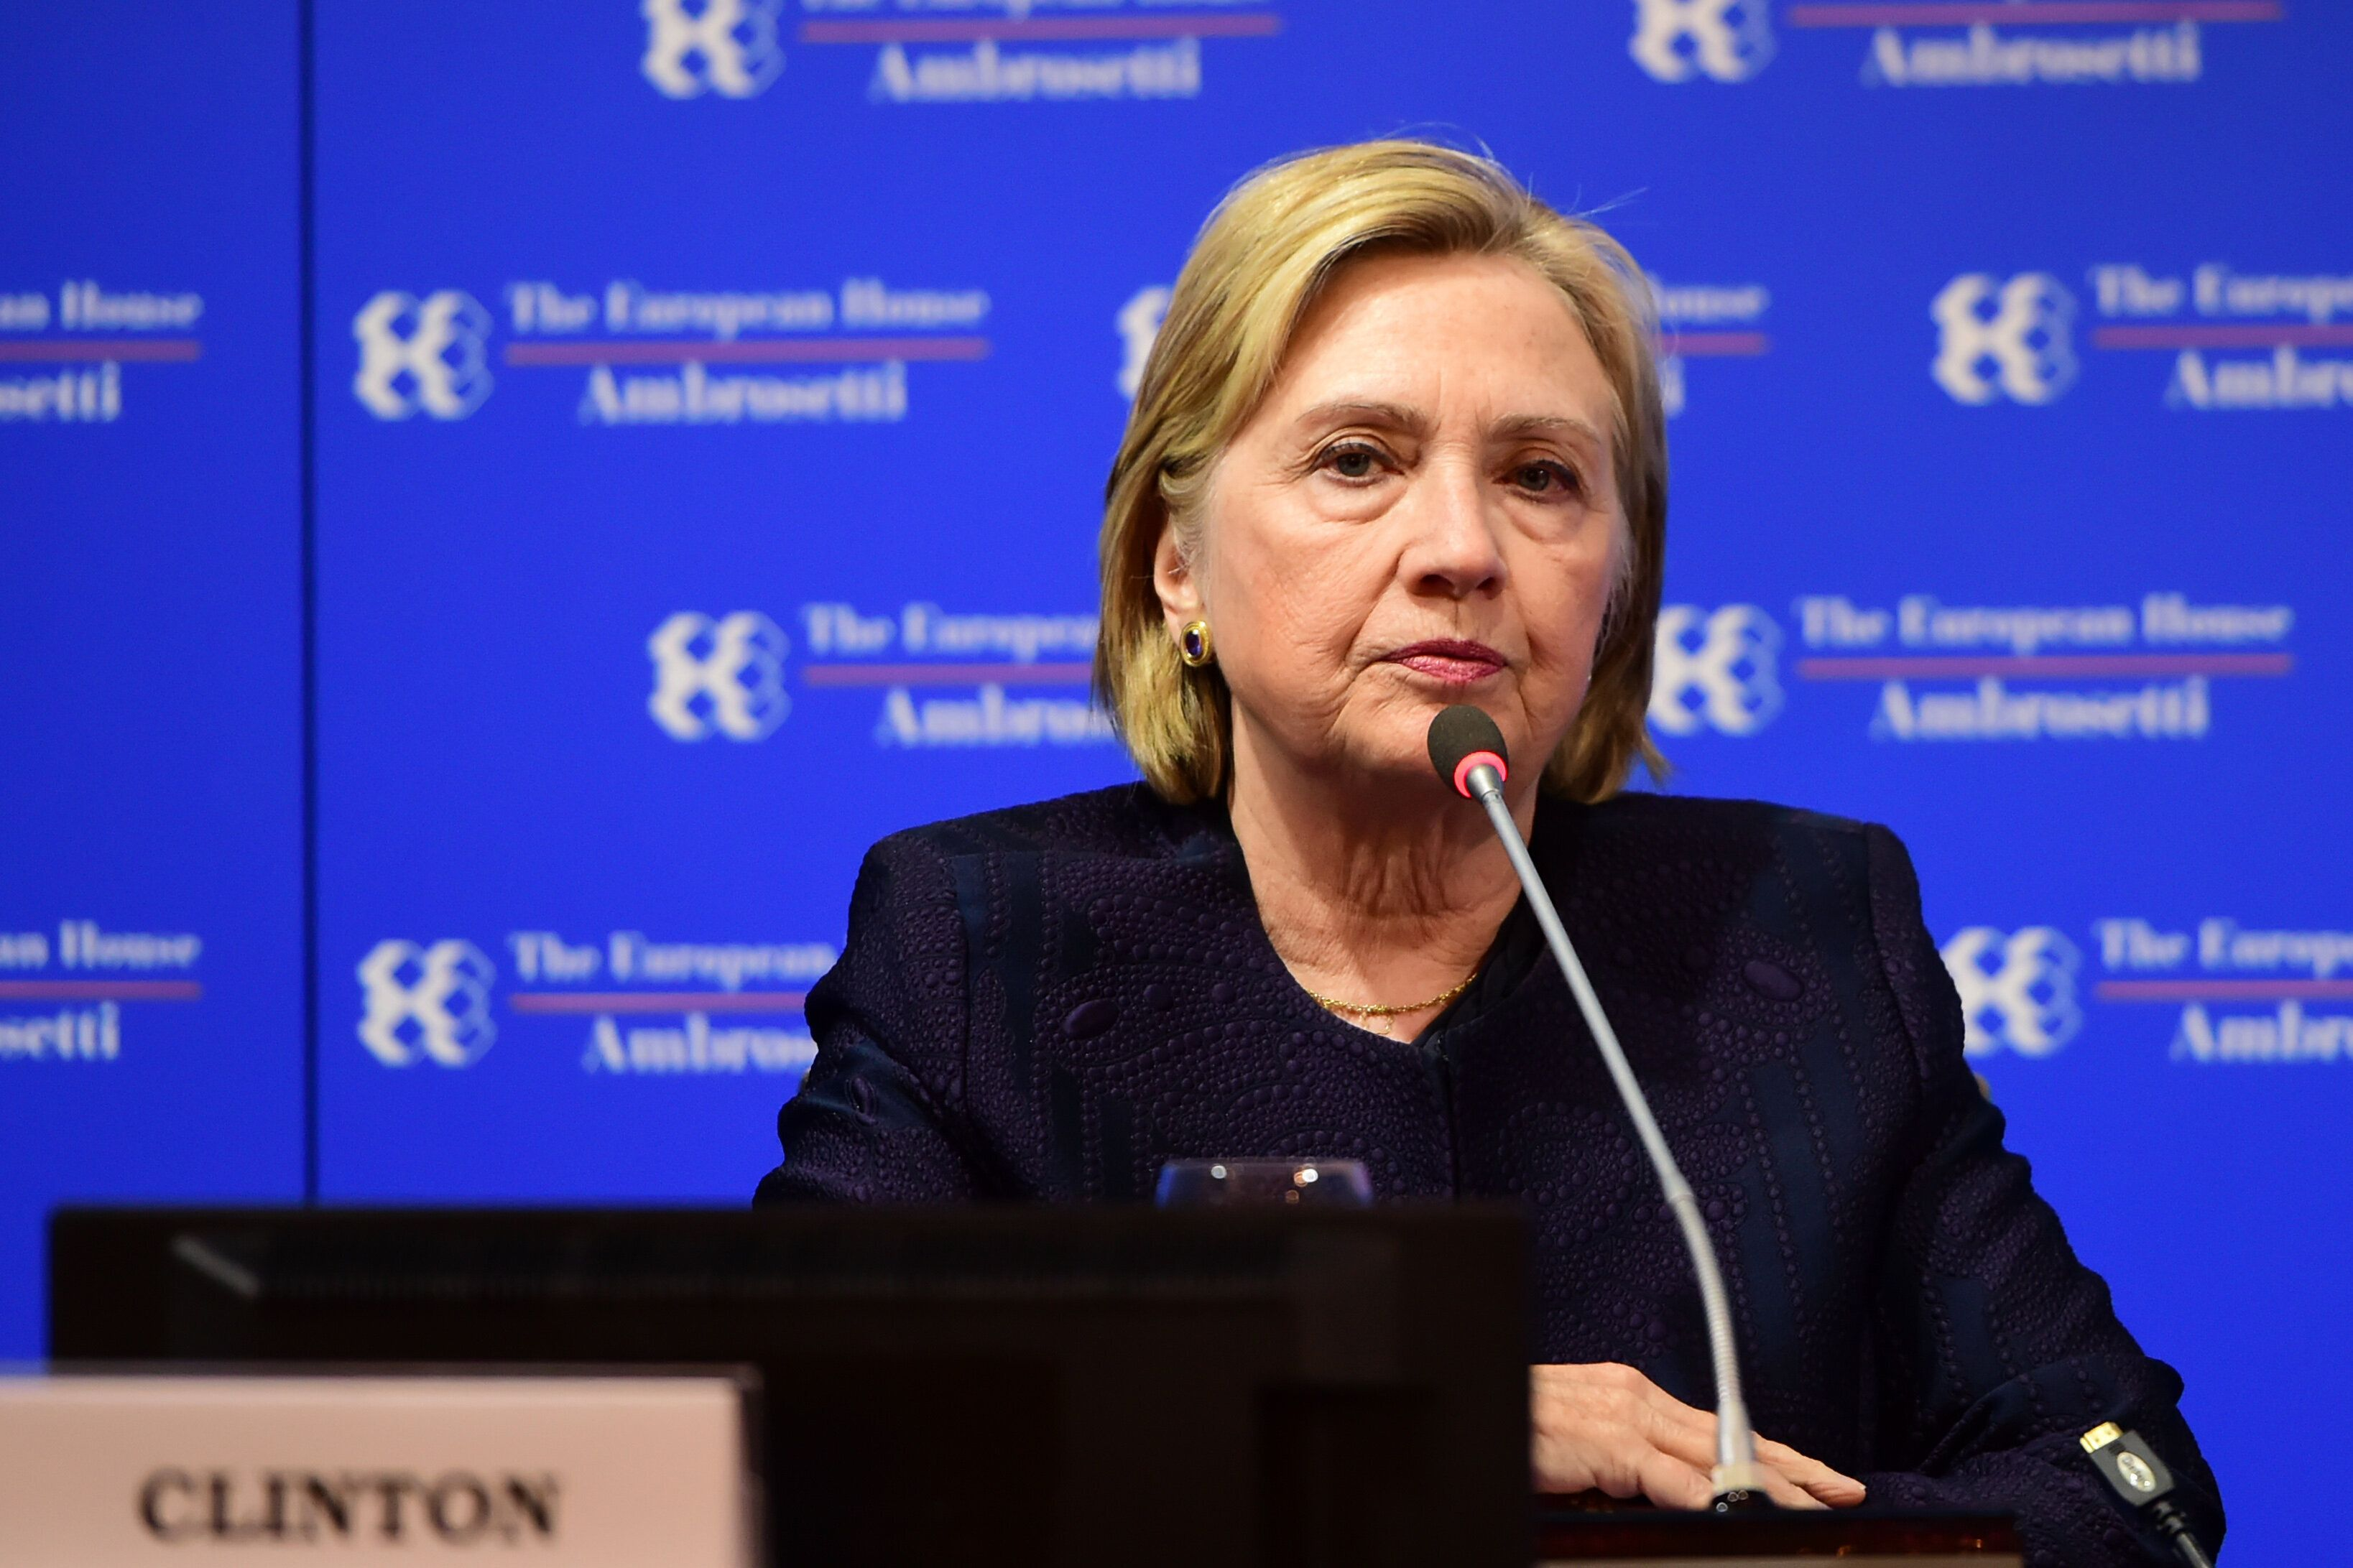 Former Secretary of State Hillary Clinton, pictured here at the Ambrosetti International Economic Forum in Italy earlier this